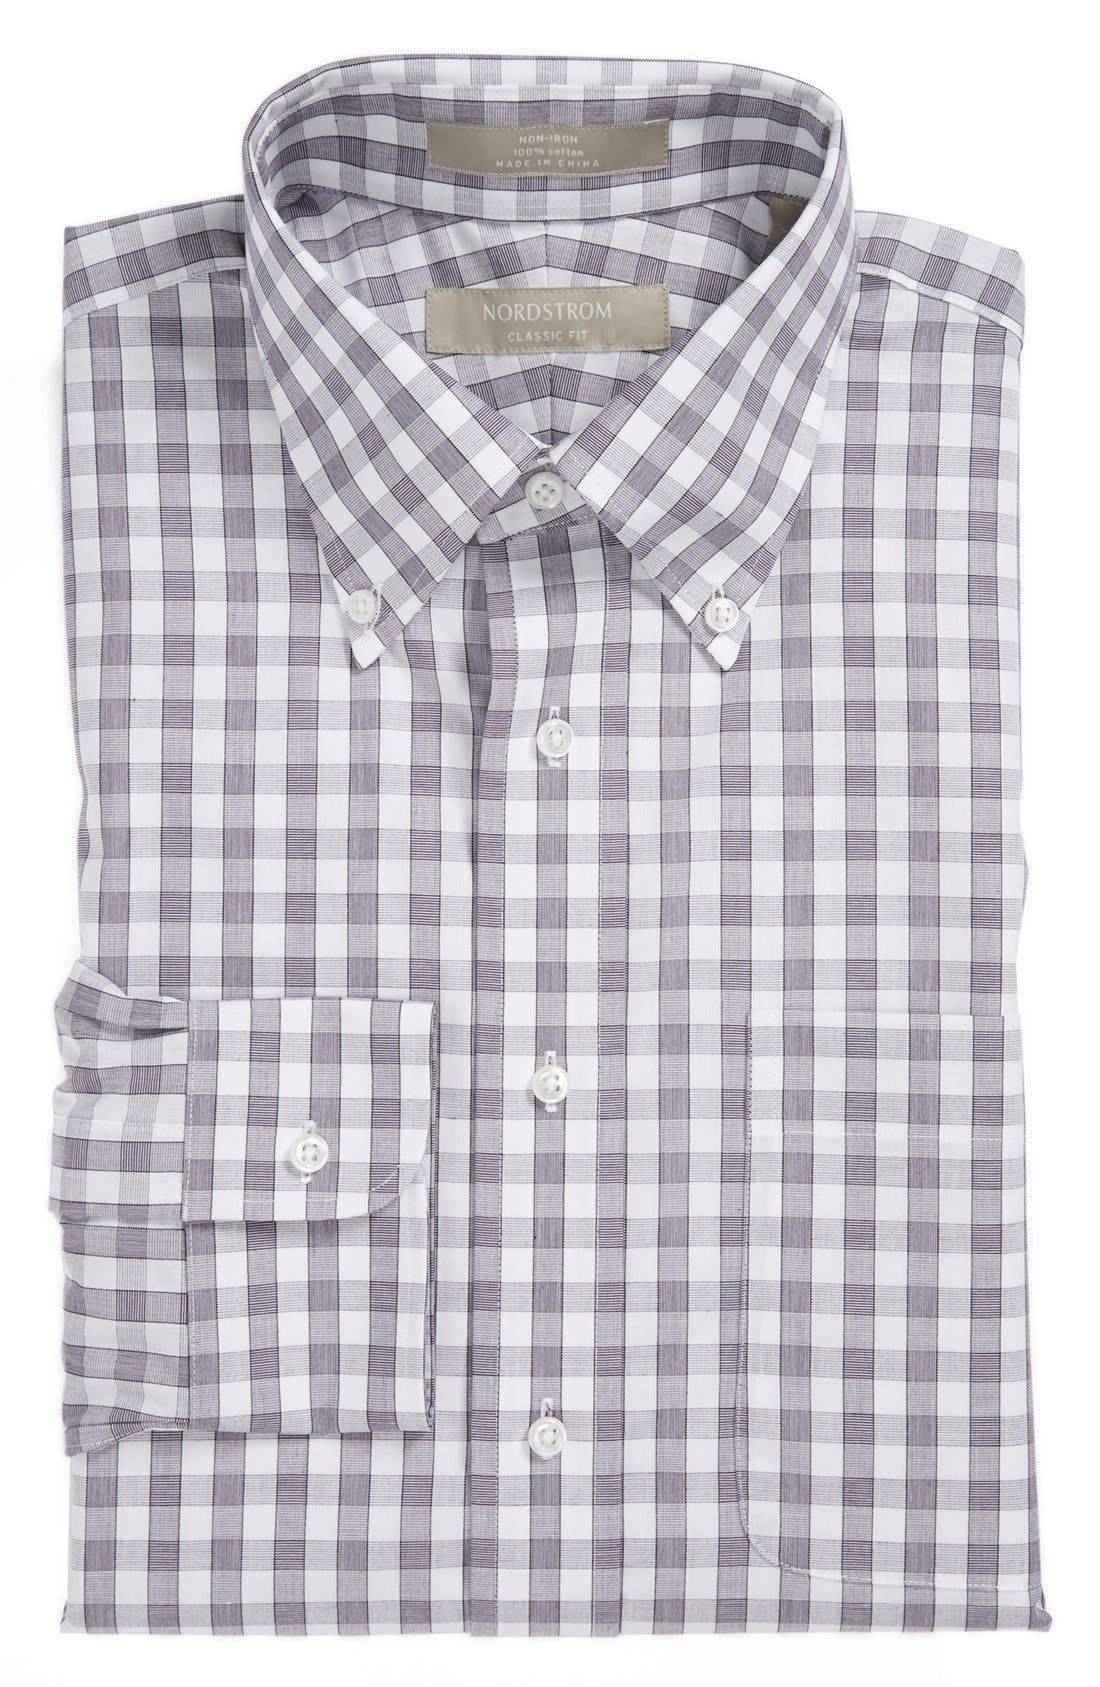 Main Image - Nordstrom Classic Fit Non-Iron Dress Shirt (Big & Tall)